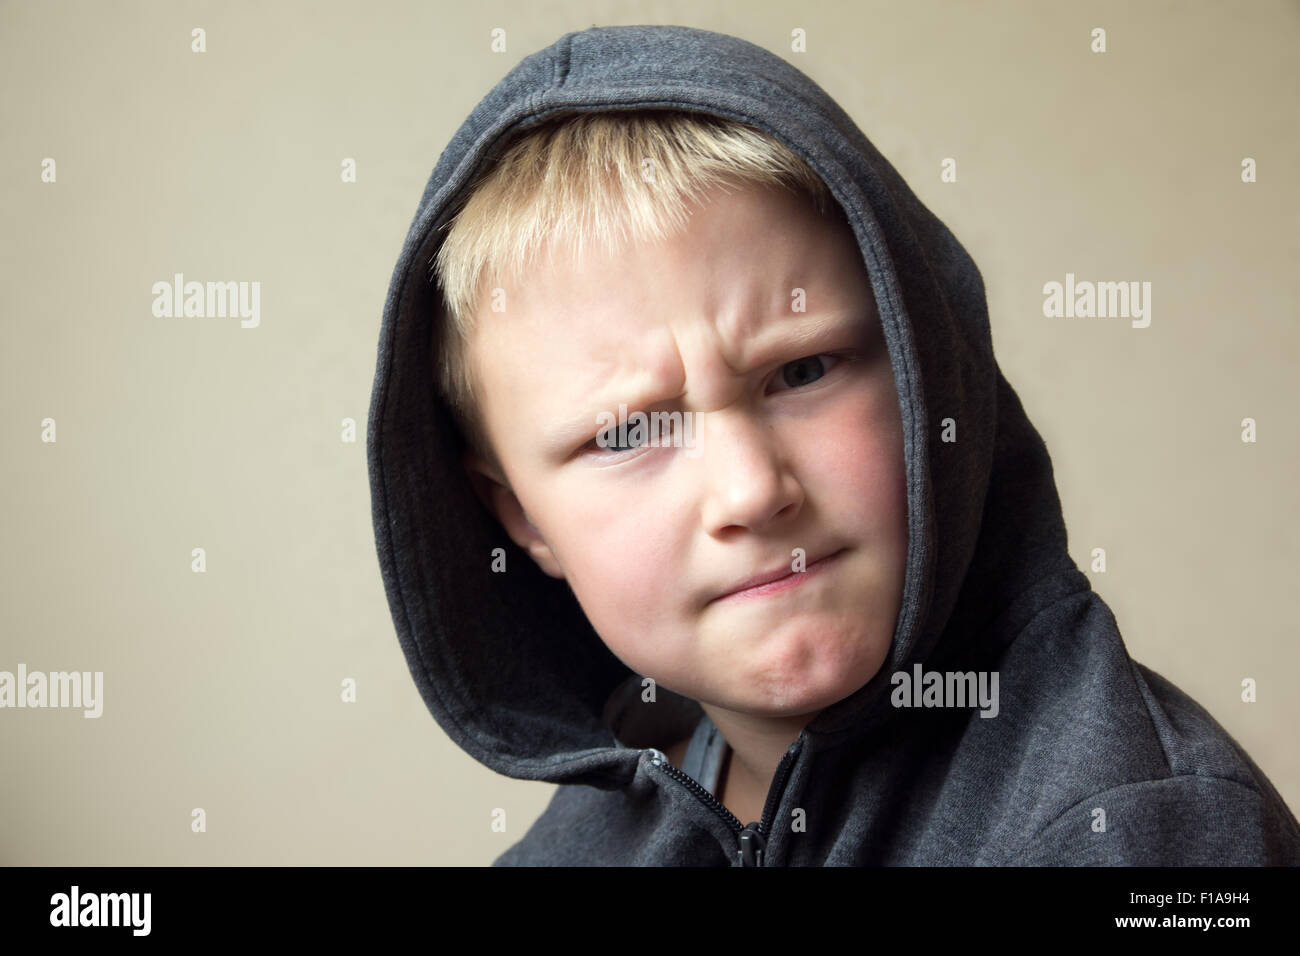 Angry child (boy, kid) portrait - Stock Image